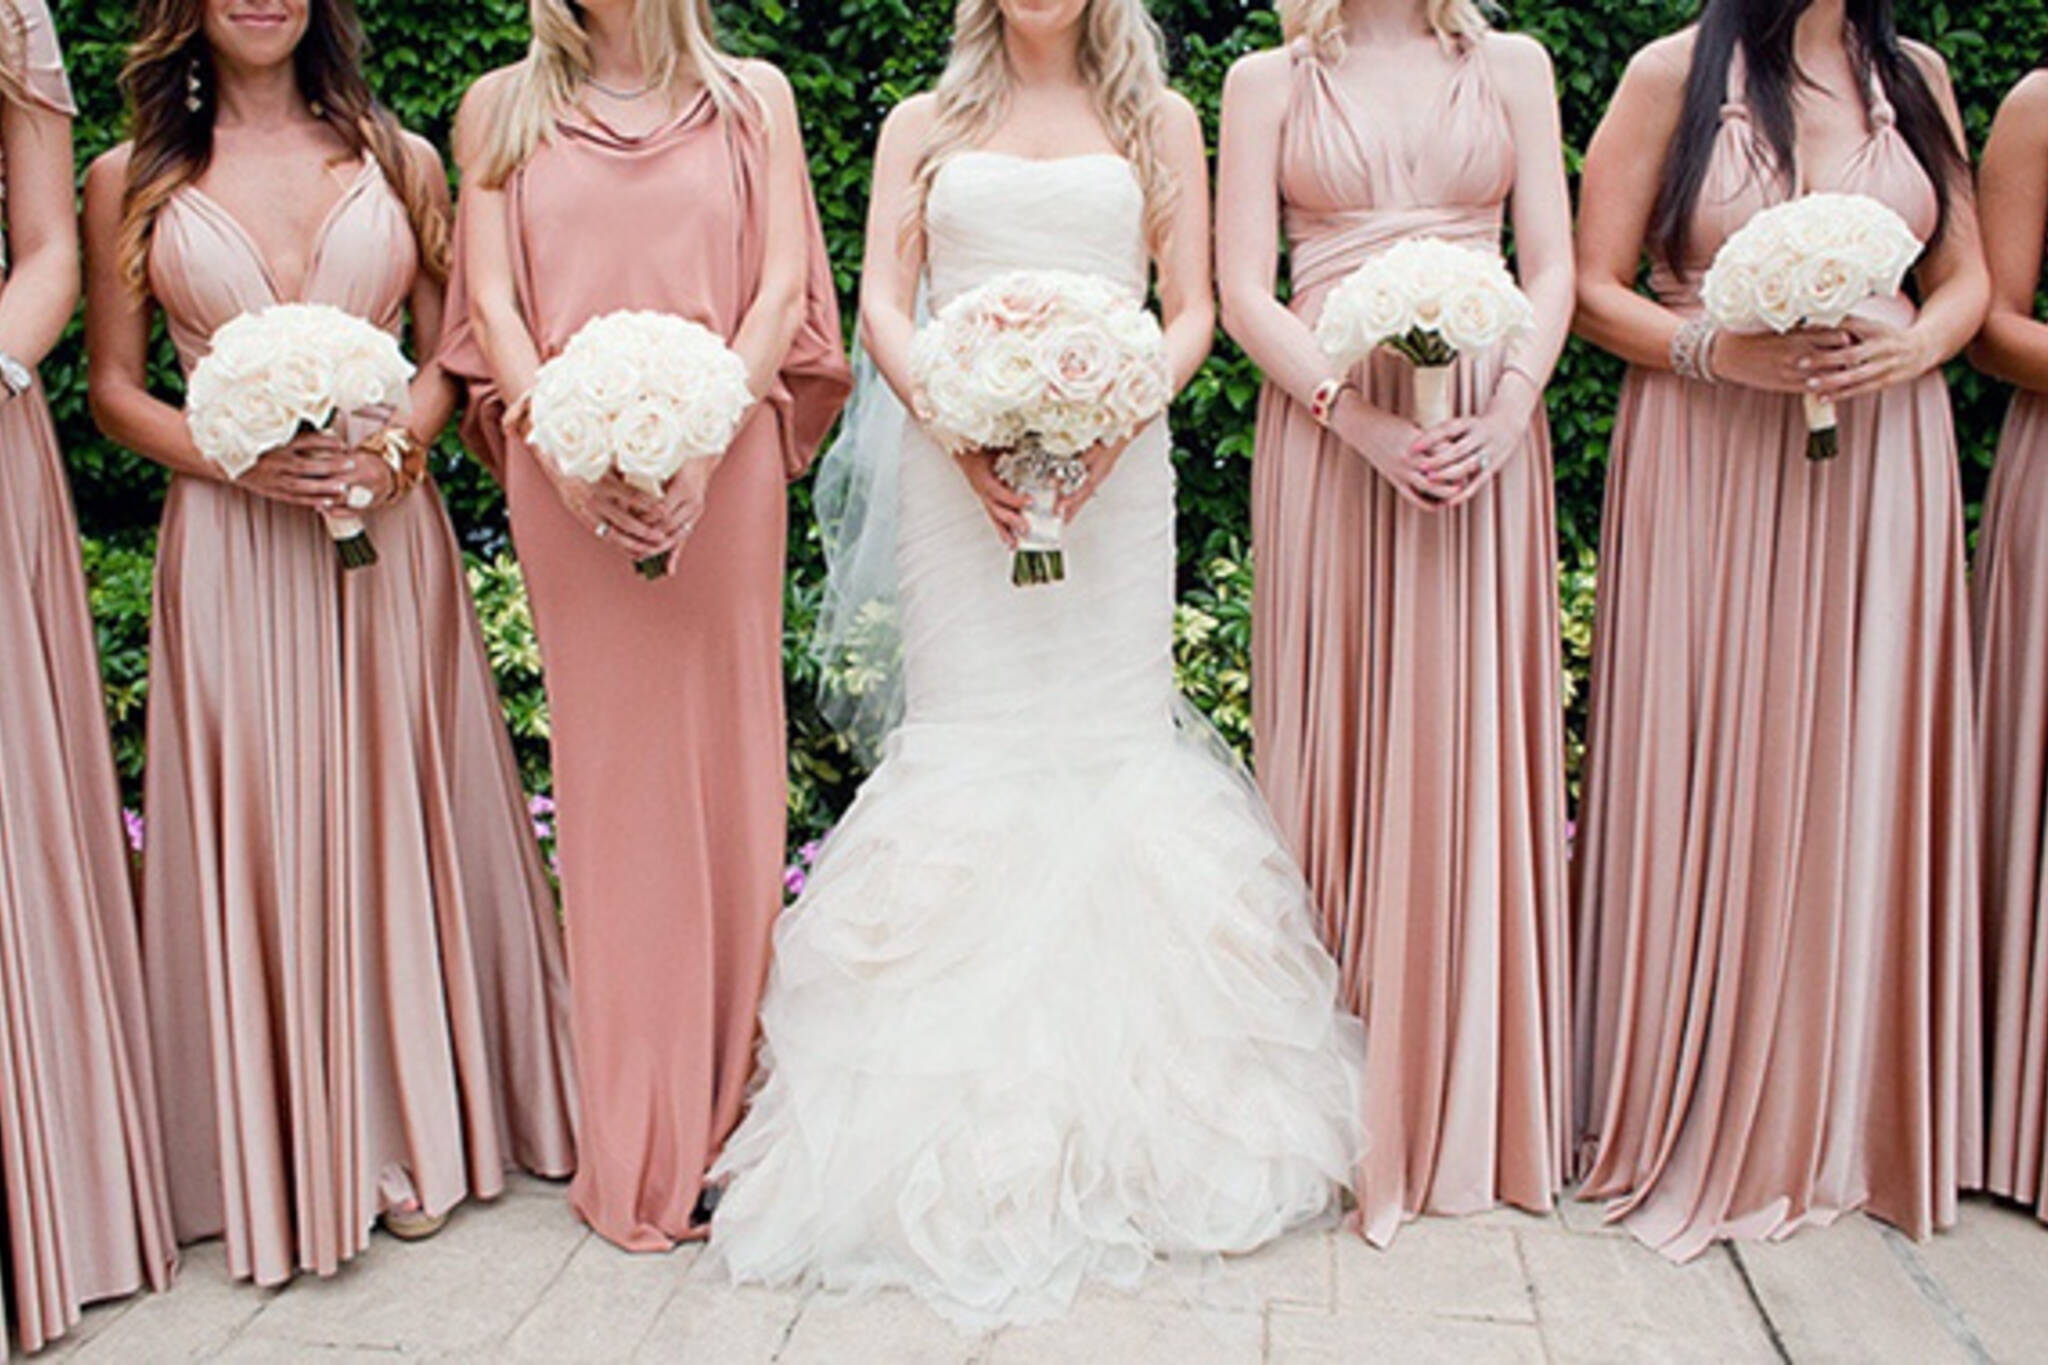 The Best Bridesmaid Dresses in Toronto